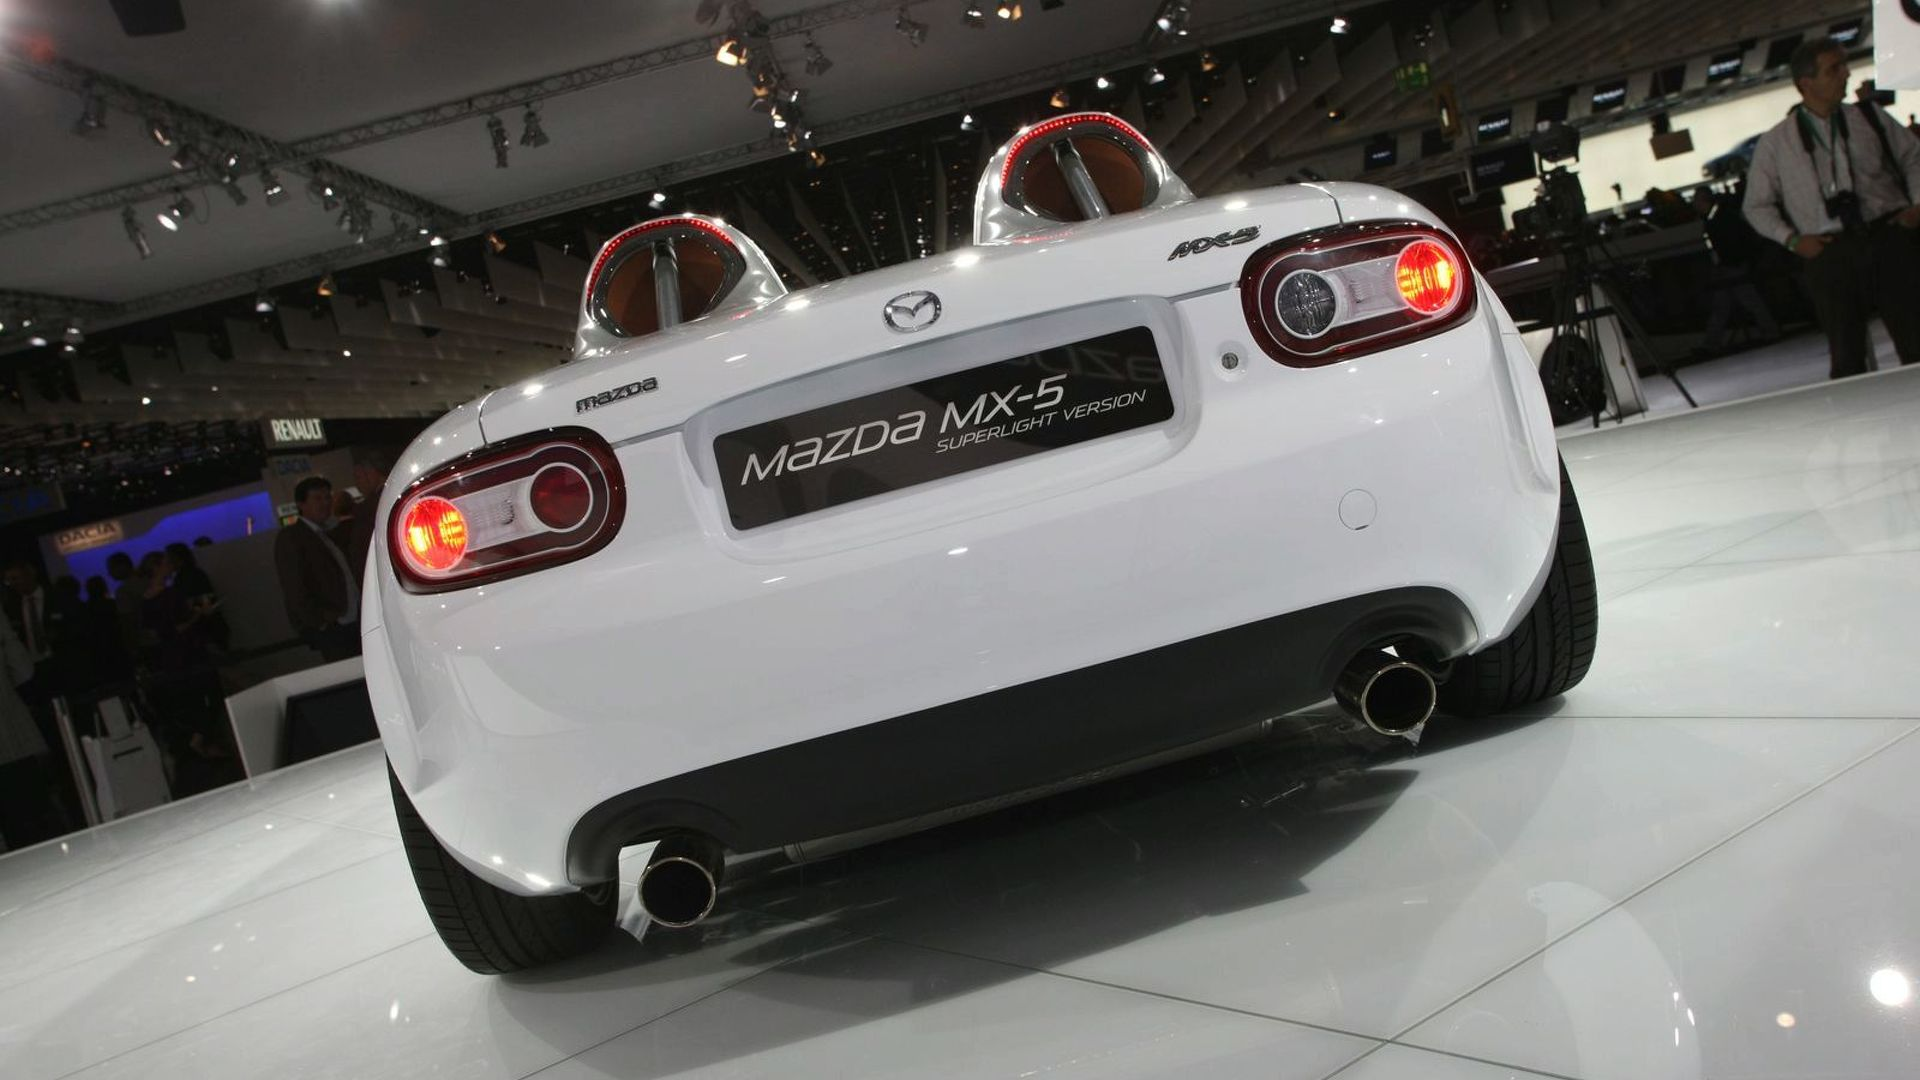 https://icdn-7.motor1.com/images/mgl/8P4w2/s1/2009-182445-mazda-mx-5-superlight-concept-live-at-2009-frankfurt-motor-show1.jpg